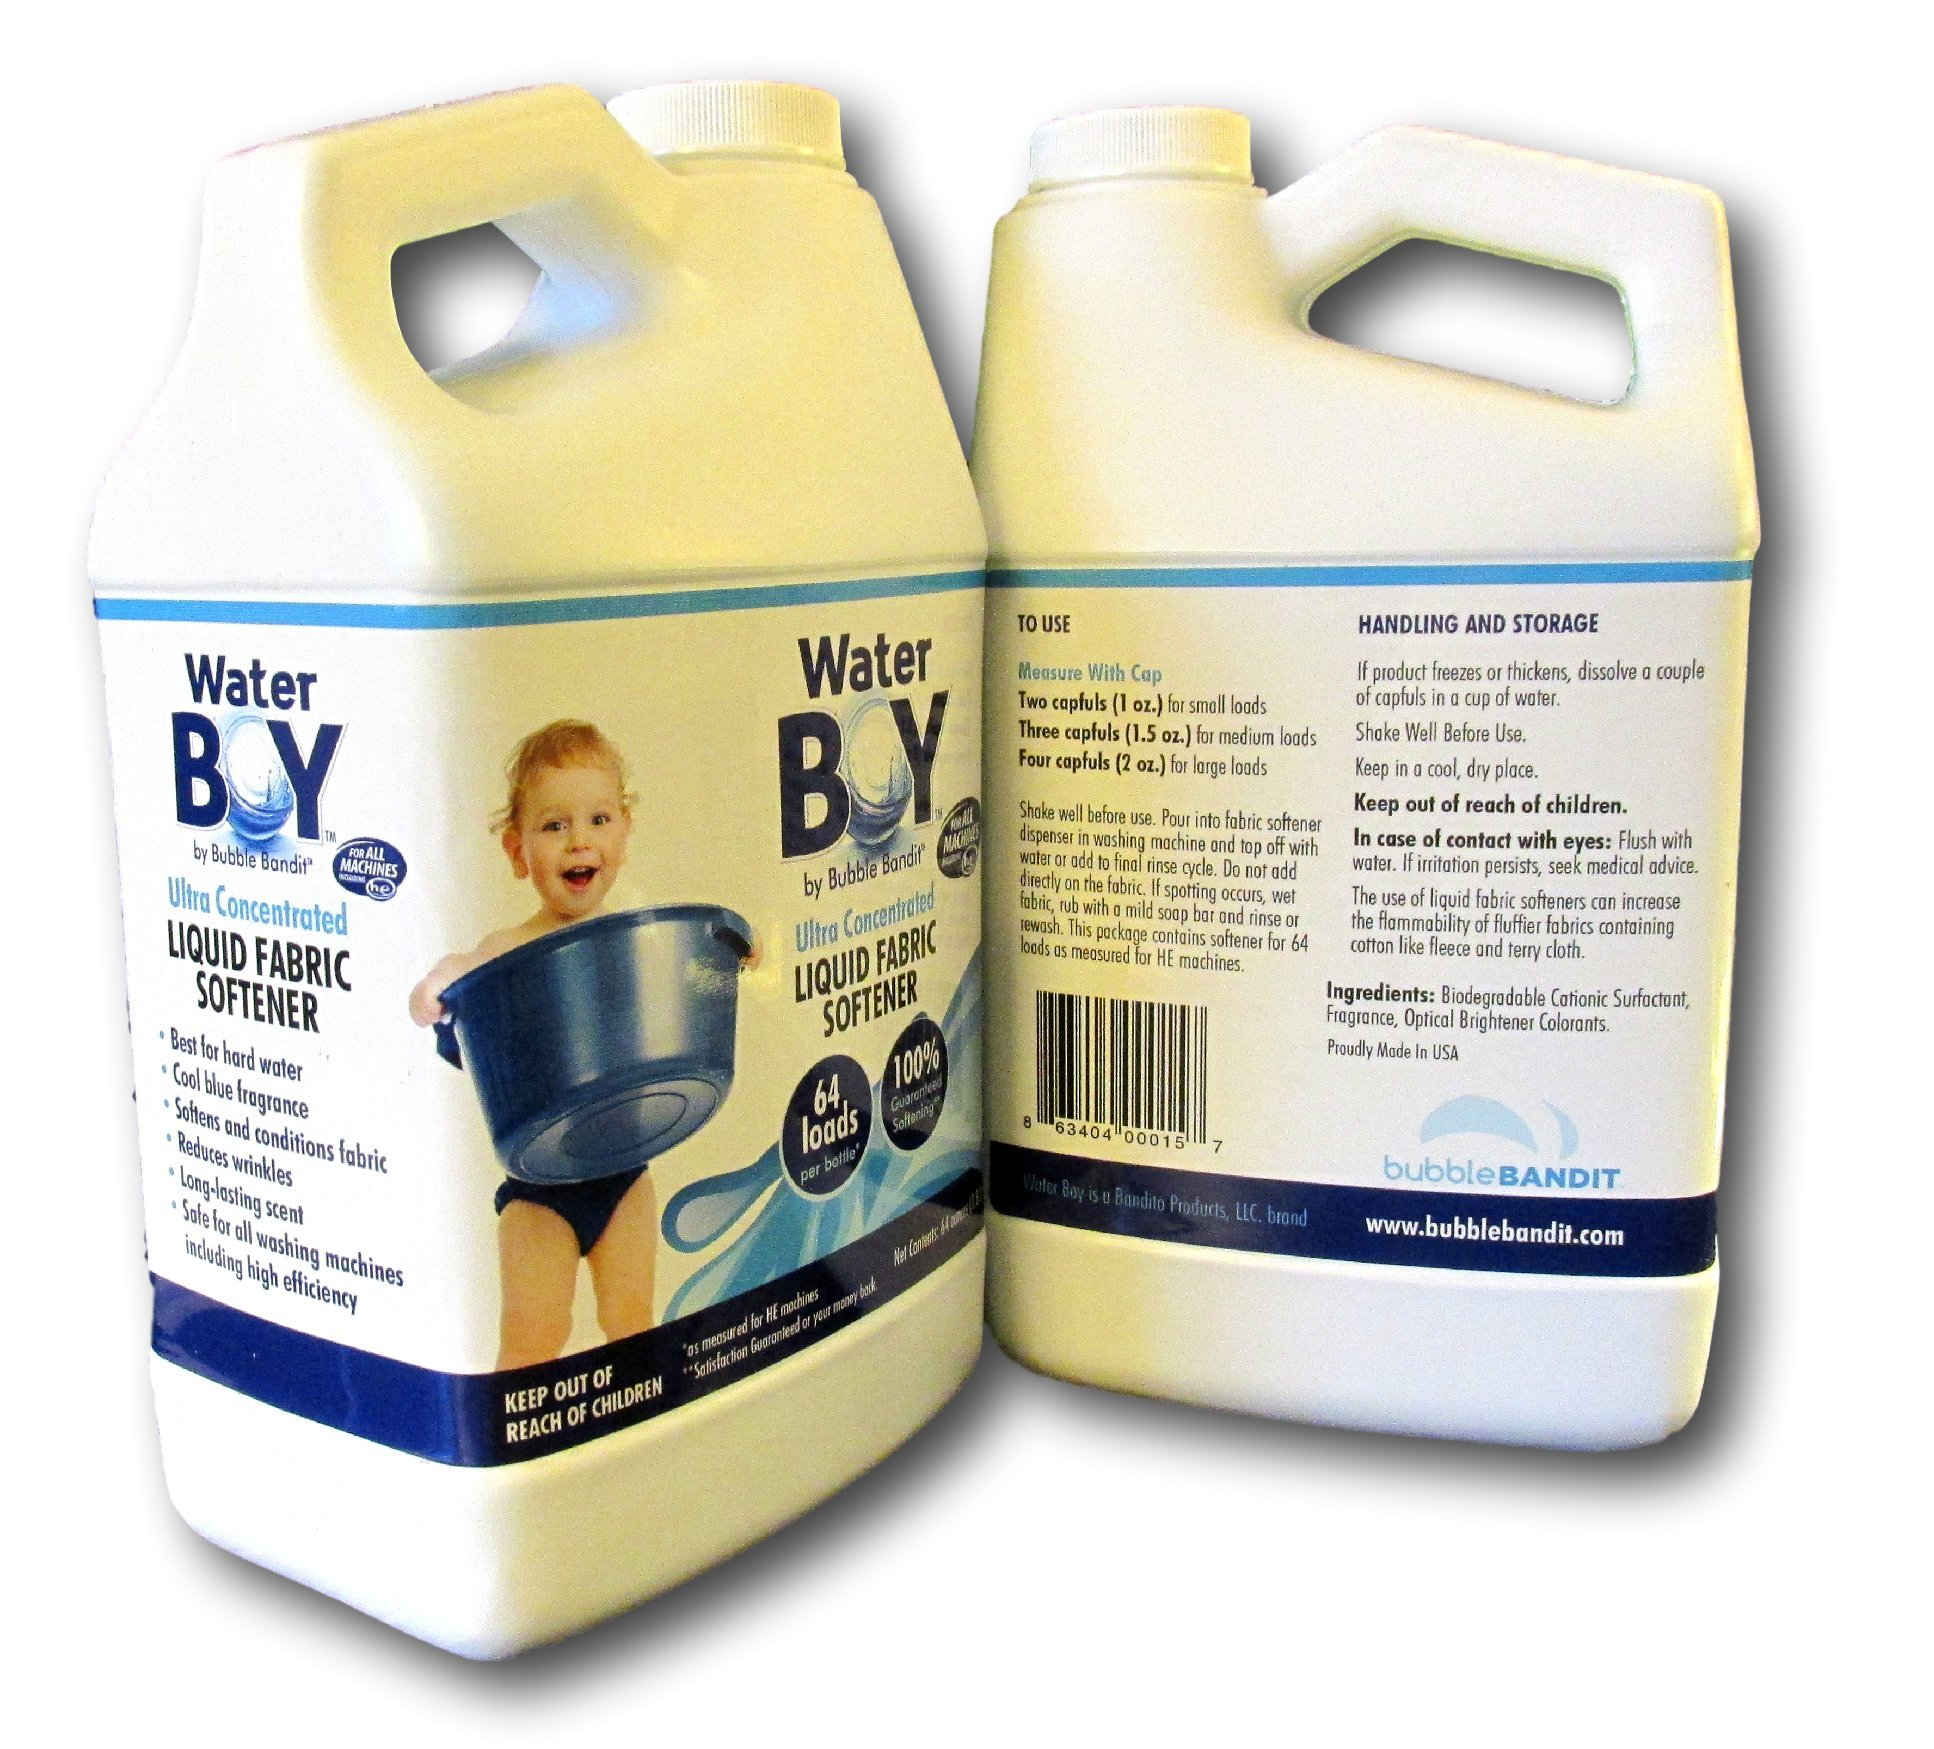 Water Boy Liquid Fabric Softener - Concentrated for Hard Water- 2 Pack (1 gallon total)